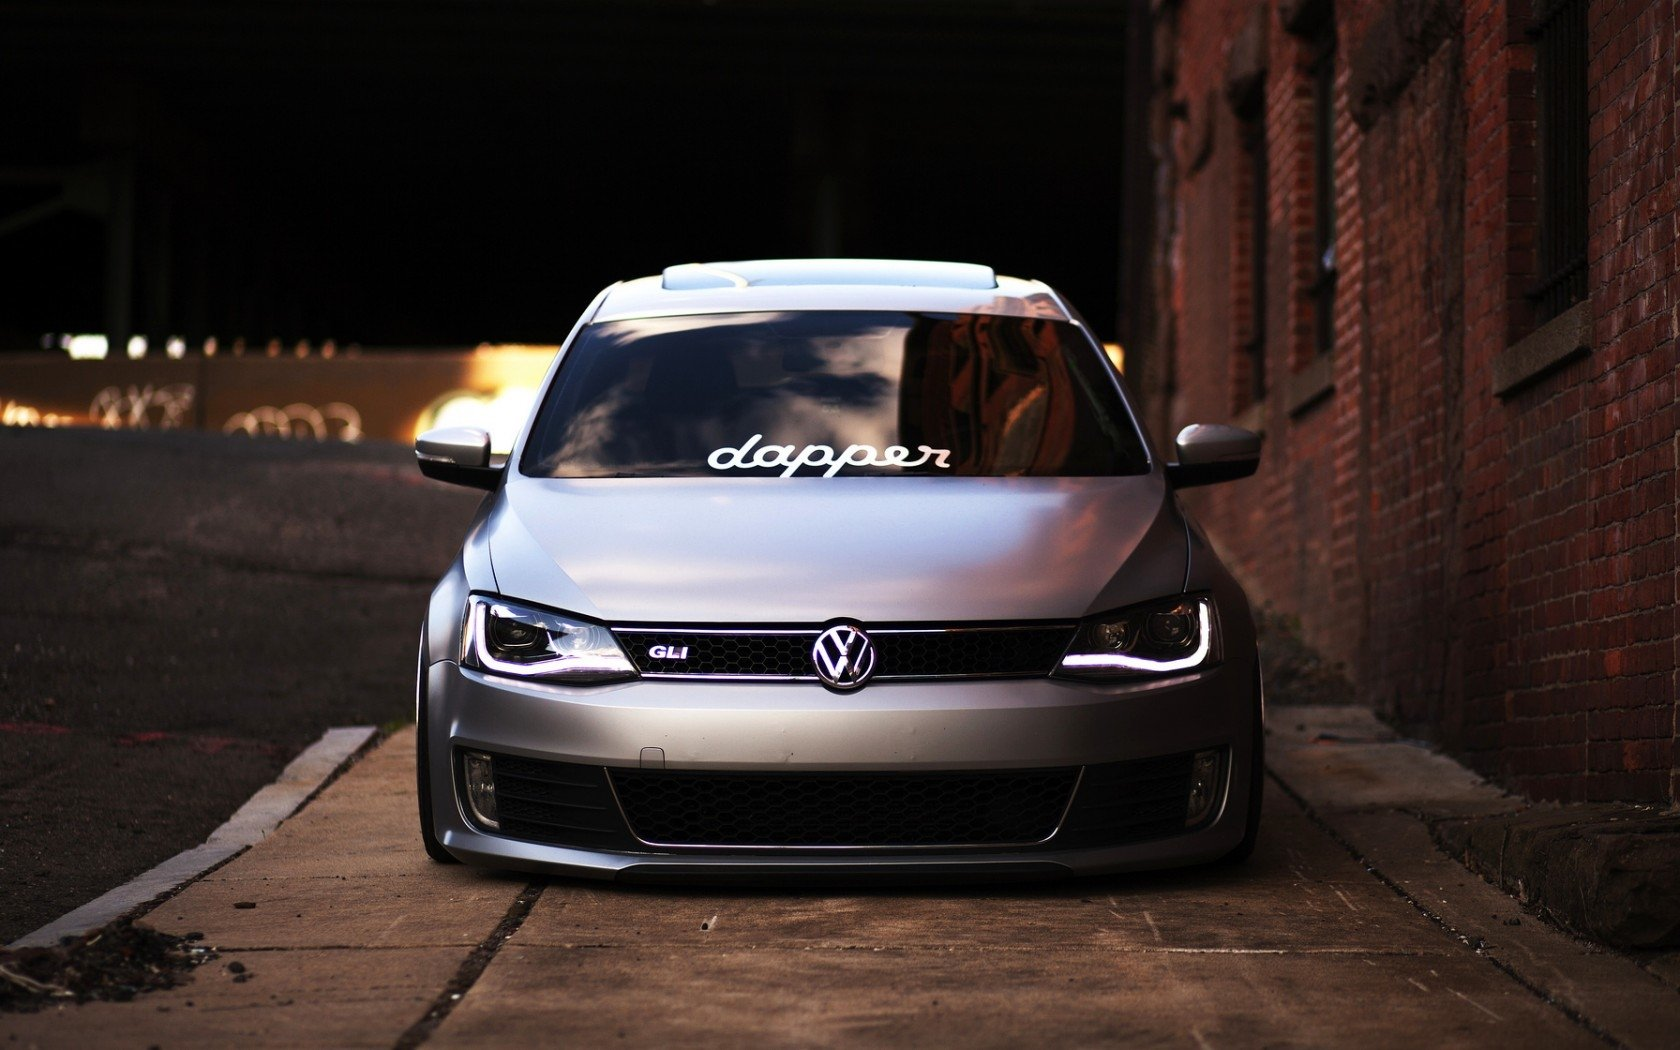 Volkswagen Golf Wallpaper and Background Image | 1680x1050 ...